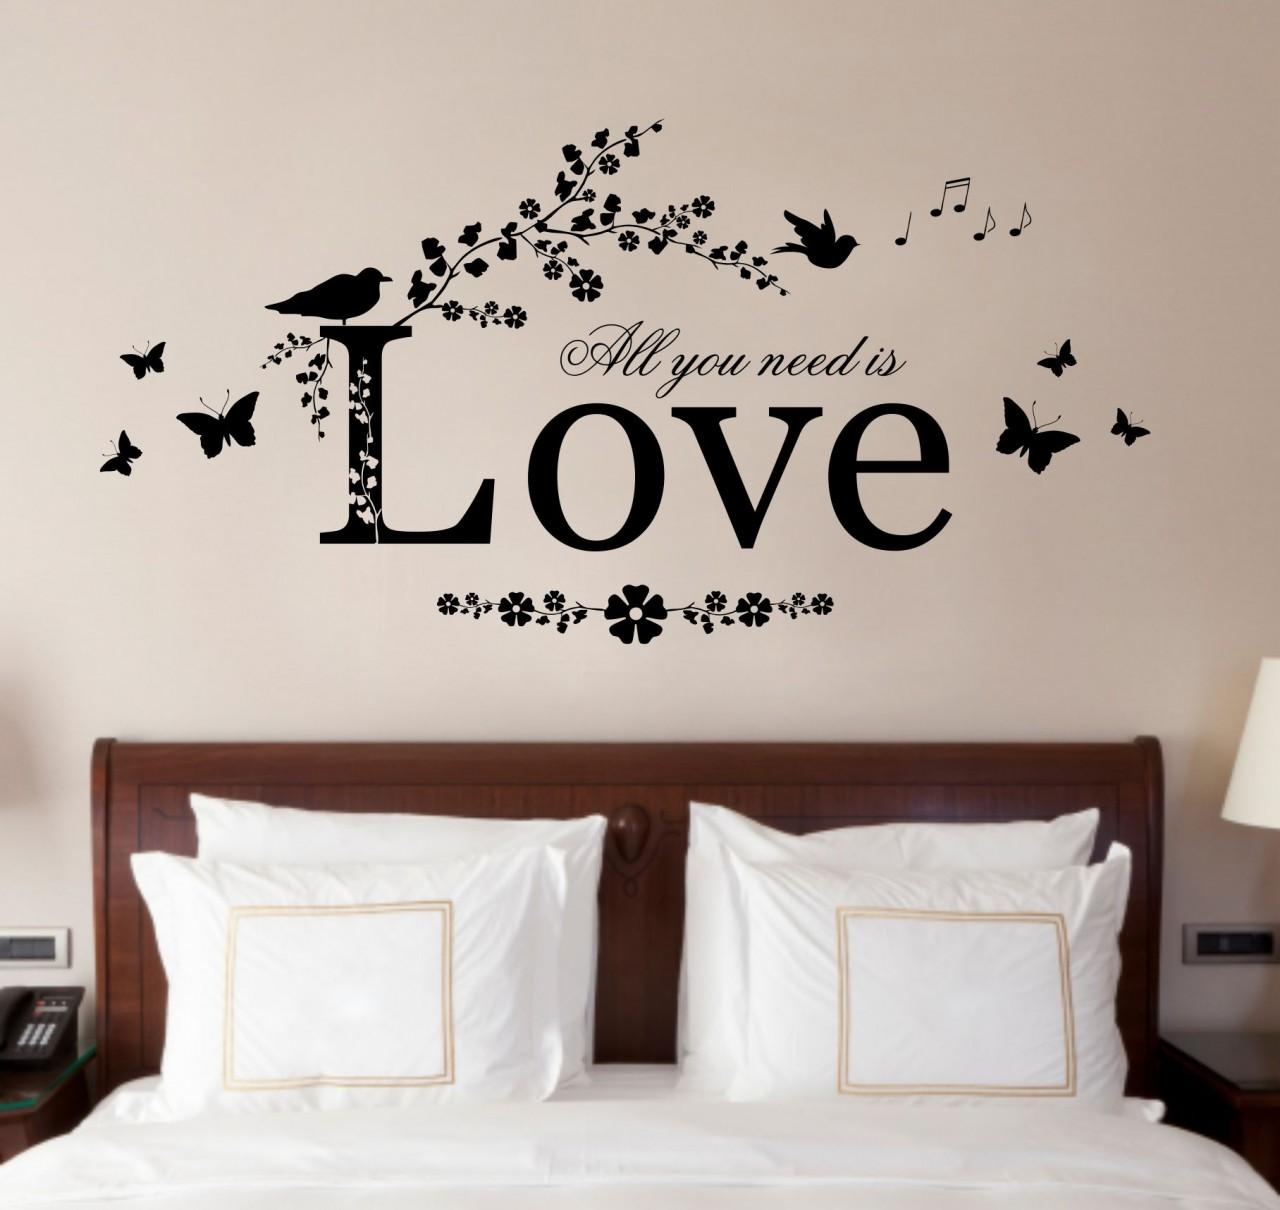 Wall Art Ideas To Beautify Any Room » Inoutinterior In Classy Wall Art (Image 20 of 20)